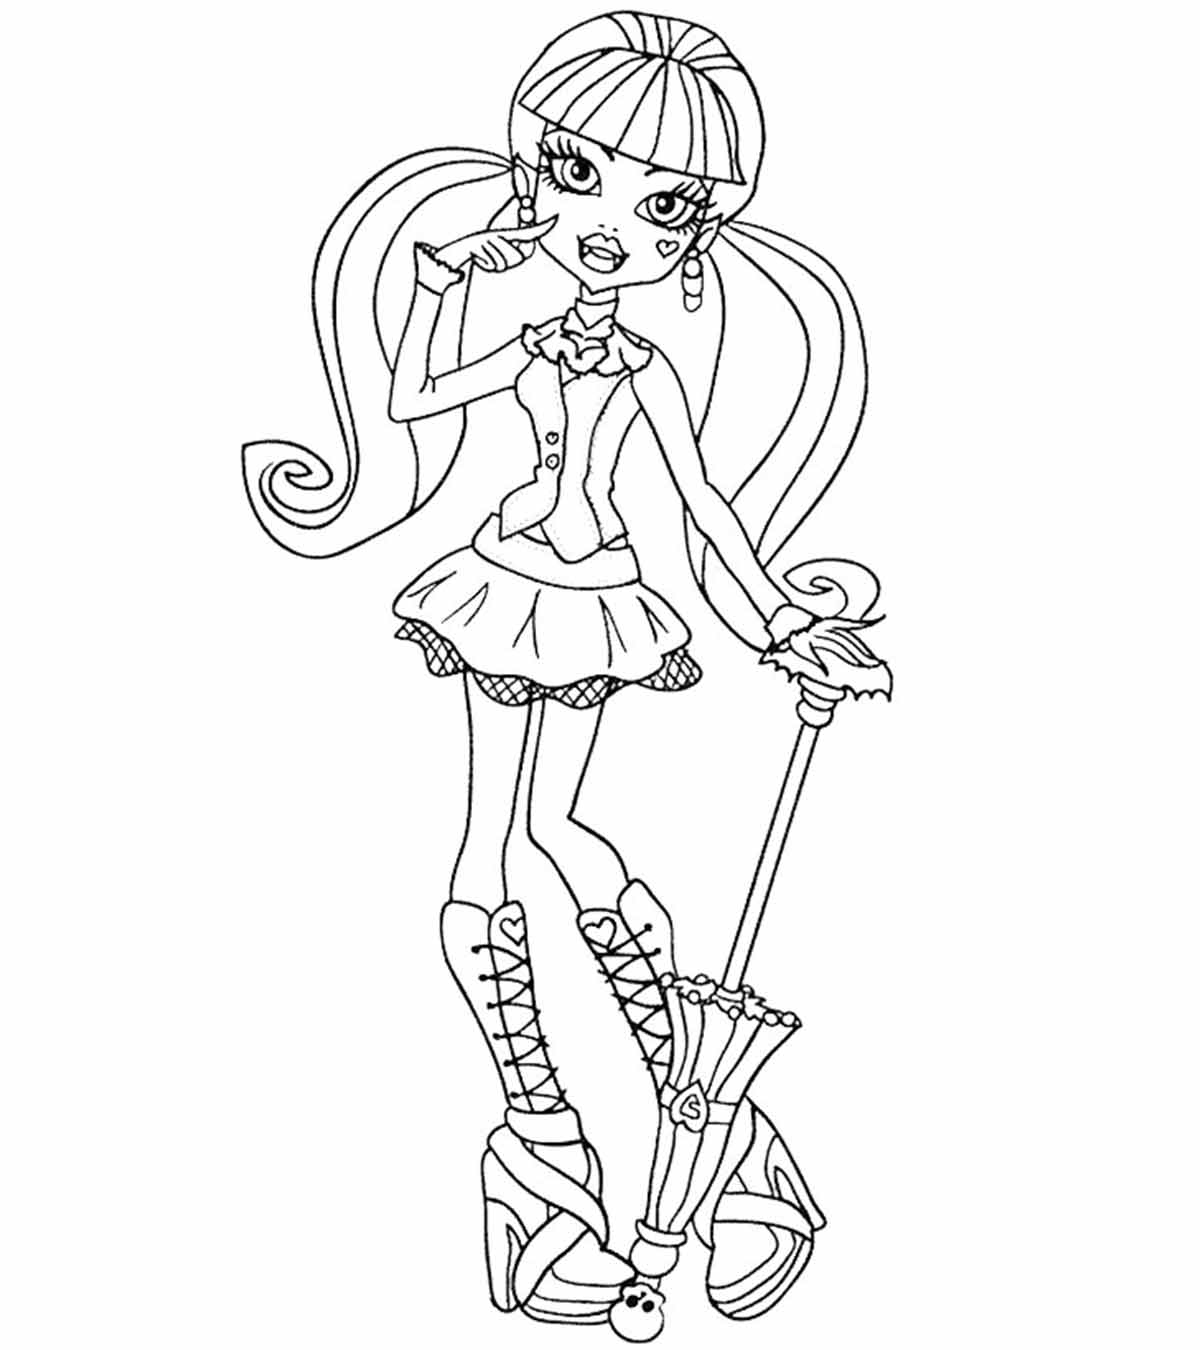 Monster High Ghoulia Doll coloring page | Free Printable Coloring ... | 1350x1200